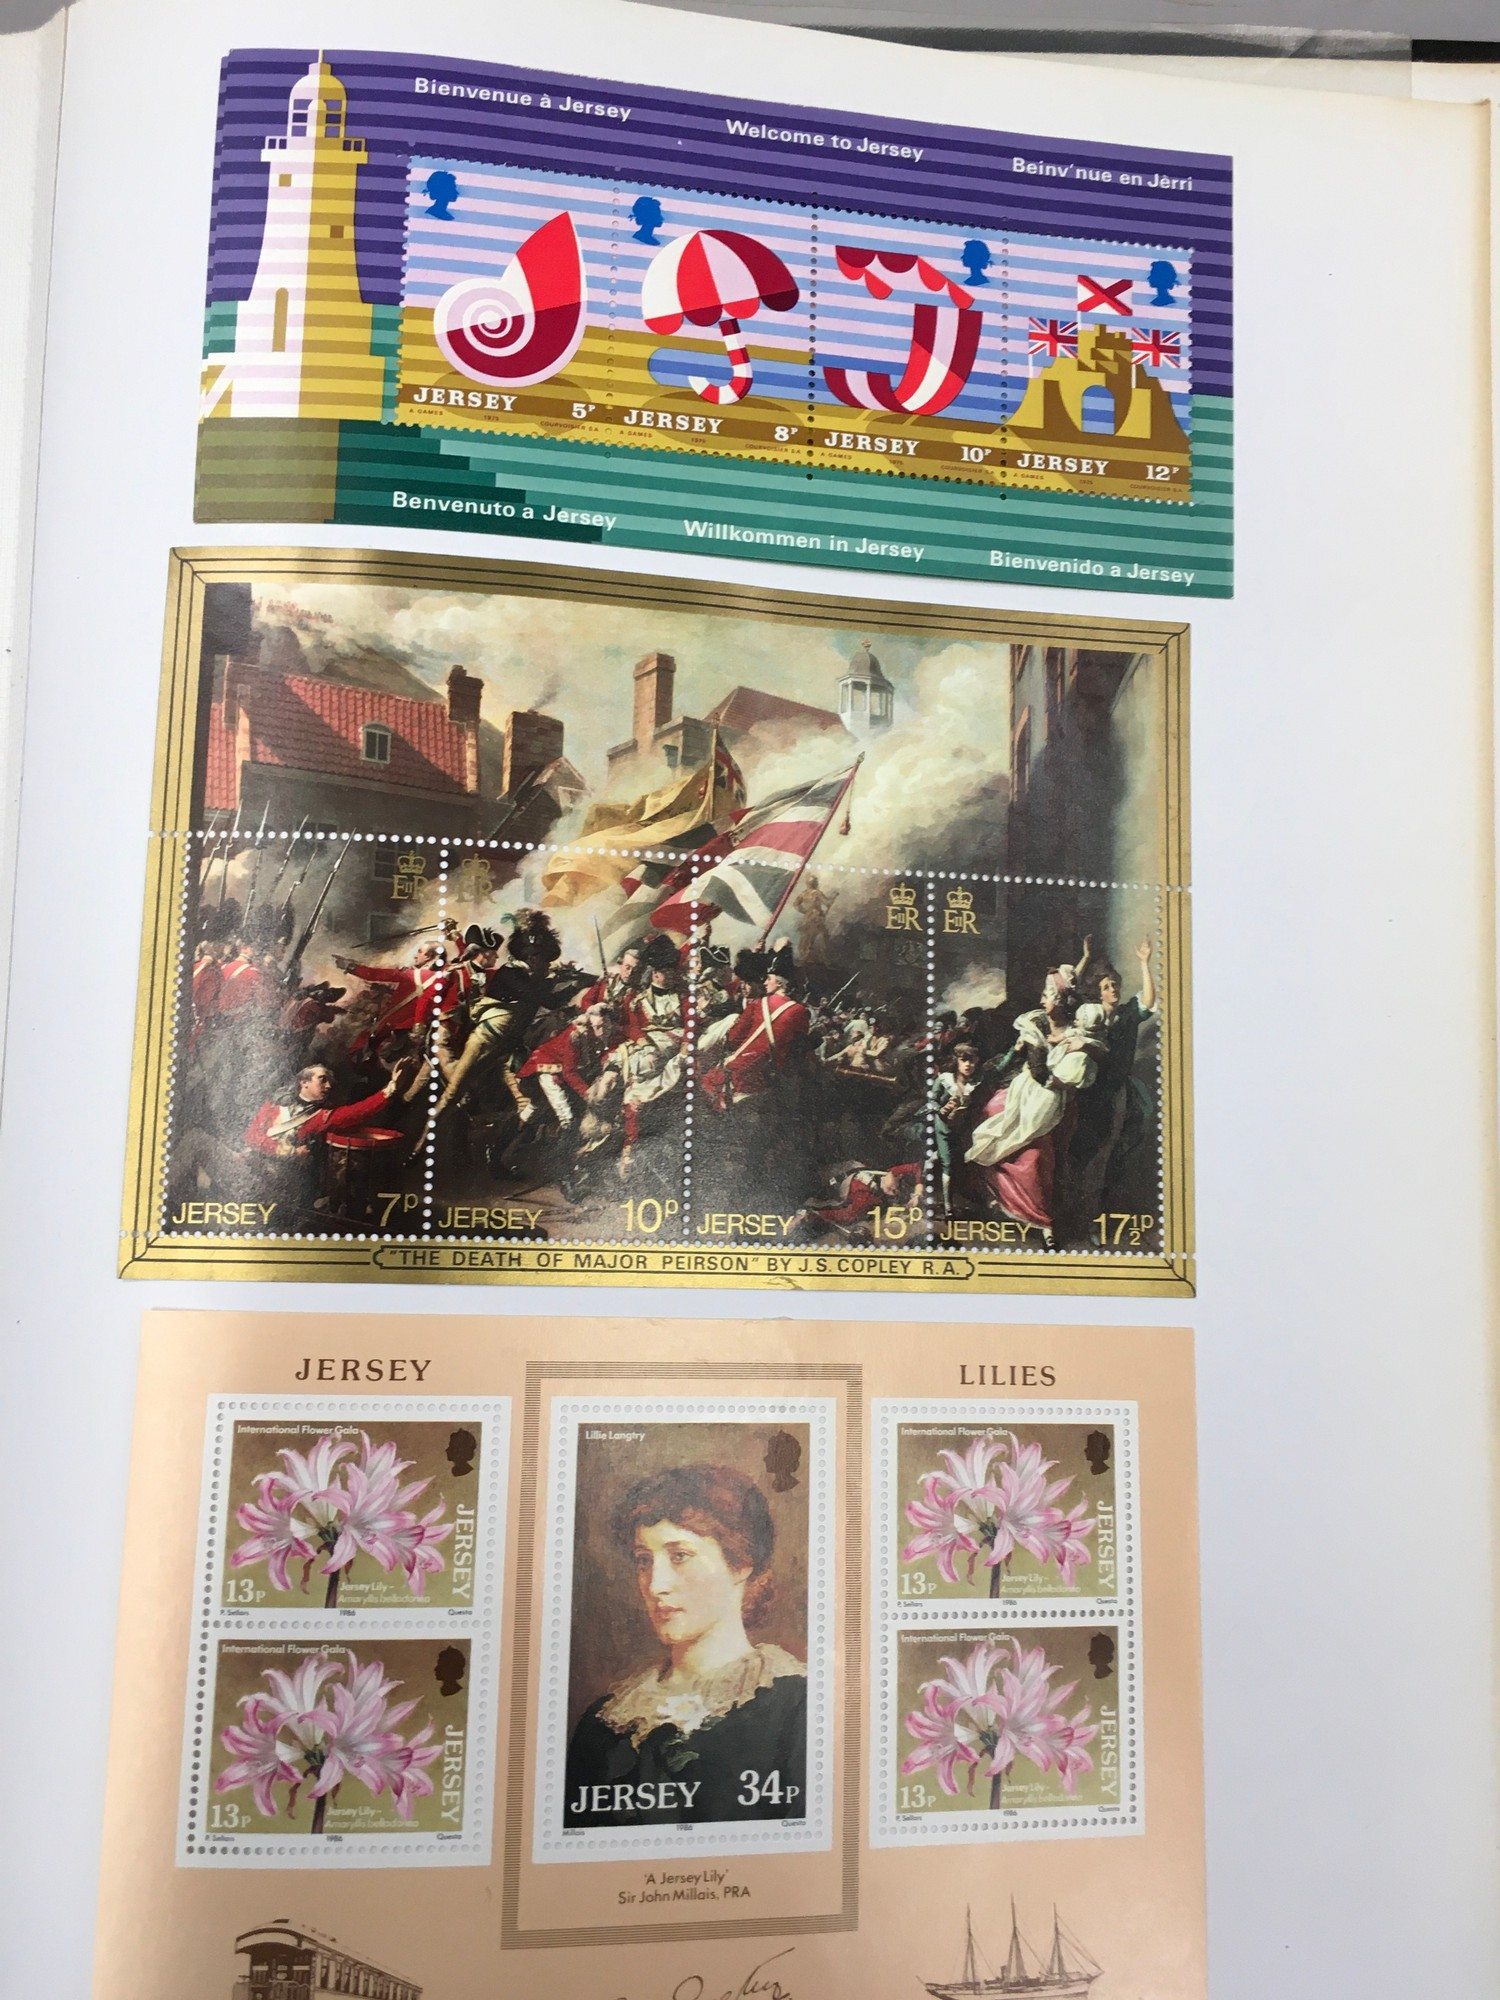 3 x Albums containing Channel Islands, Jersey Guernsey and Alderney over £800 in mint stamps. - Image 17 of 21